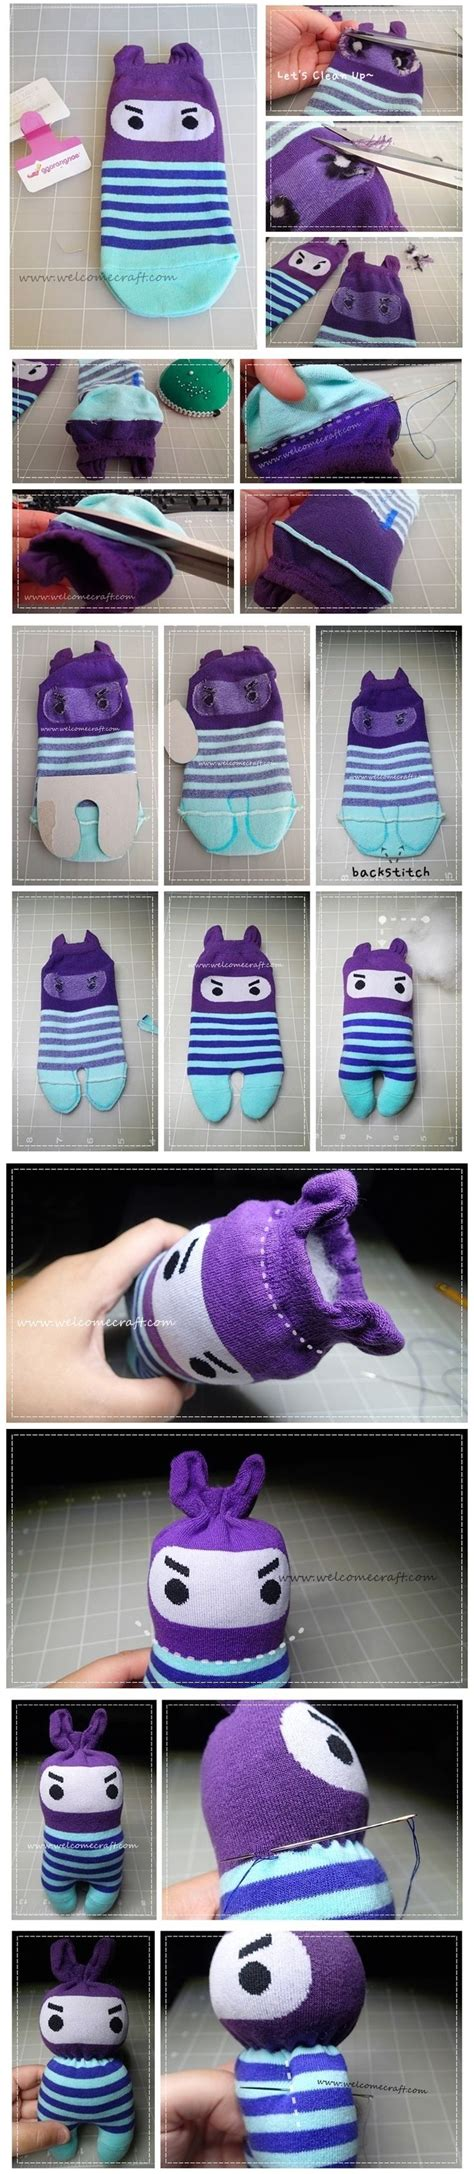 Kaos Bunny And Knit 25 best ideas about sock dolls on diy doll